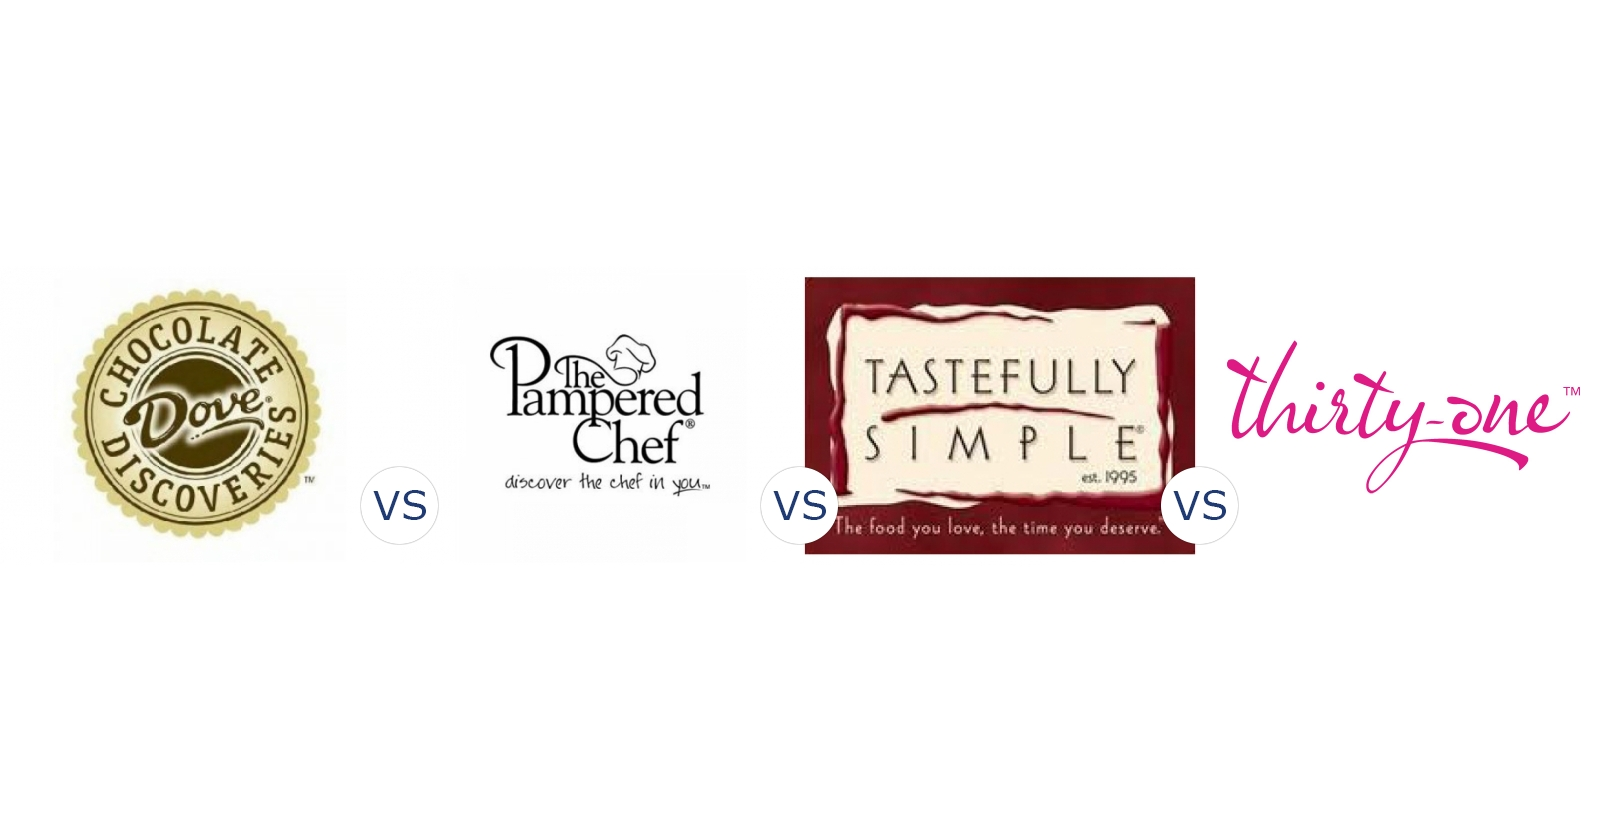 Dove Chocolate Discoveries vs. Pampered Chef vs. Tastefully Simple ...